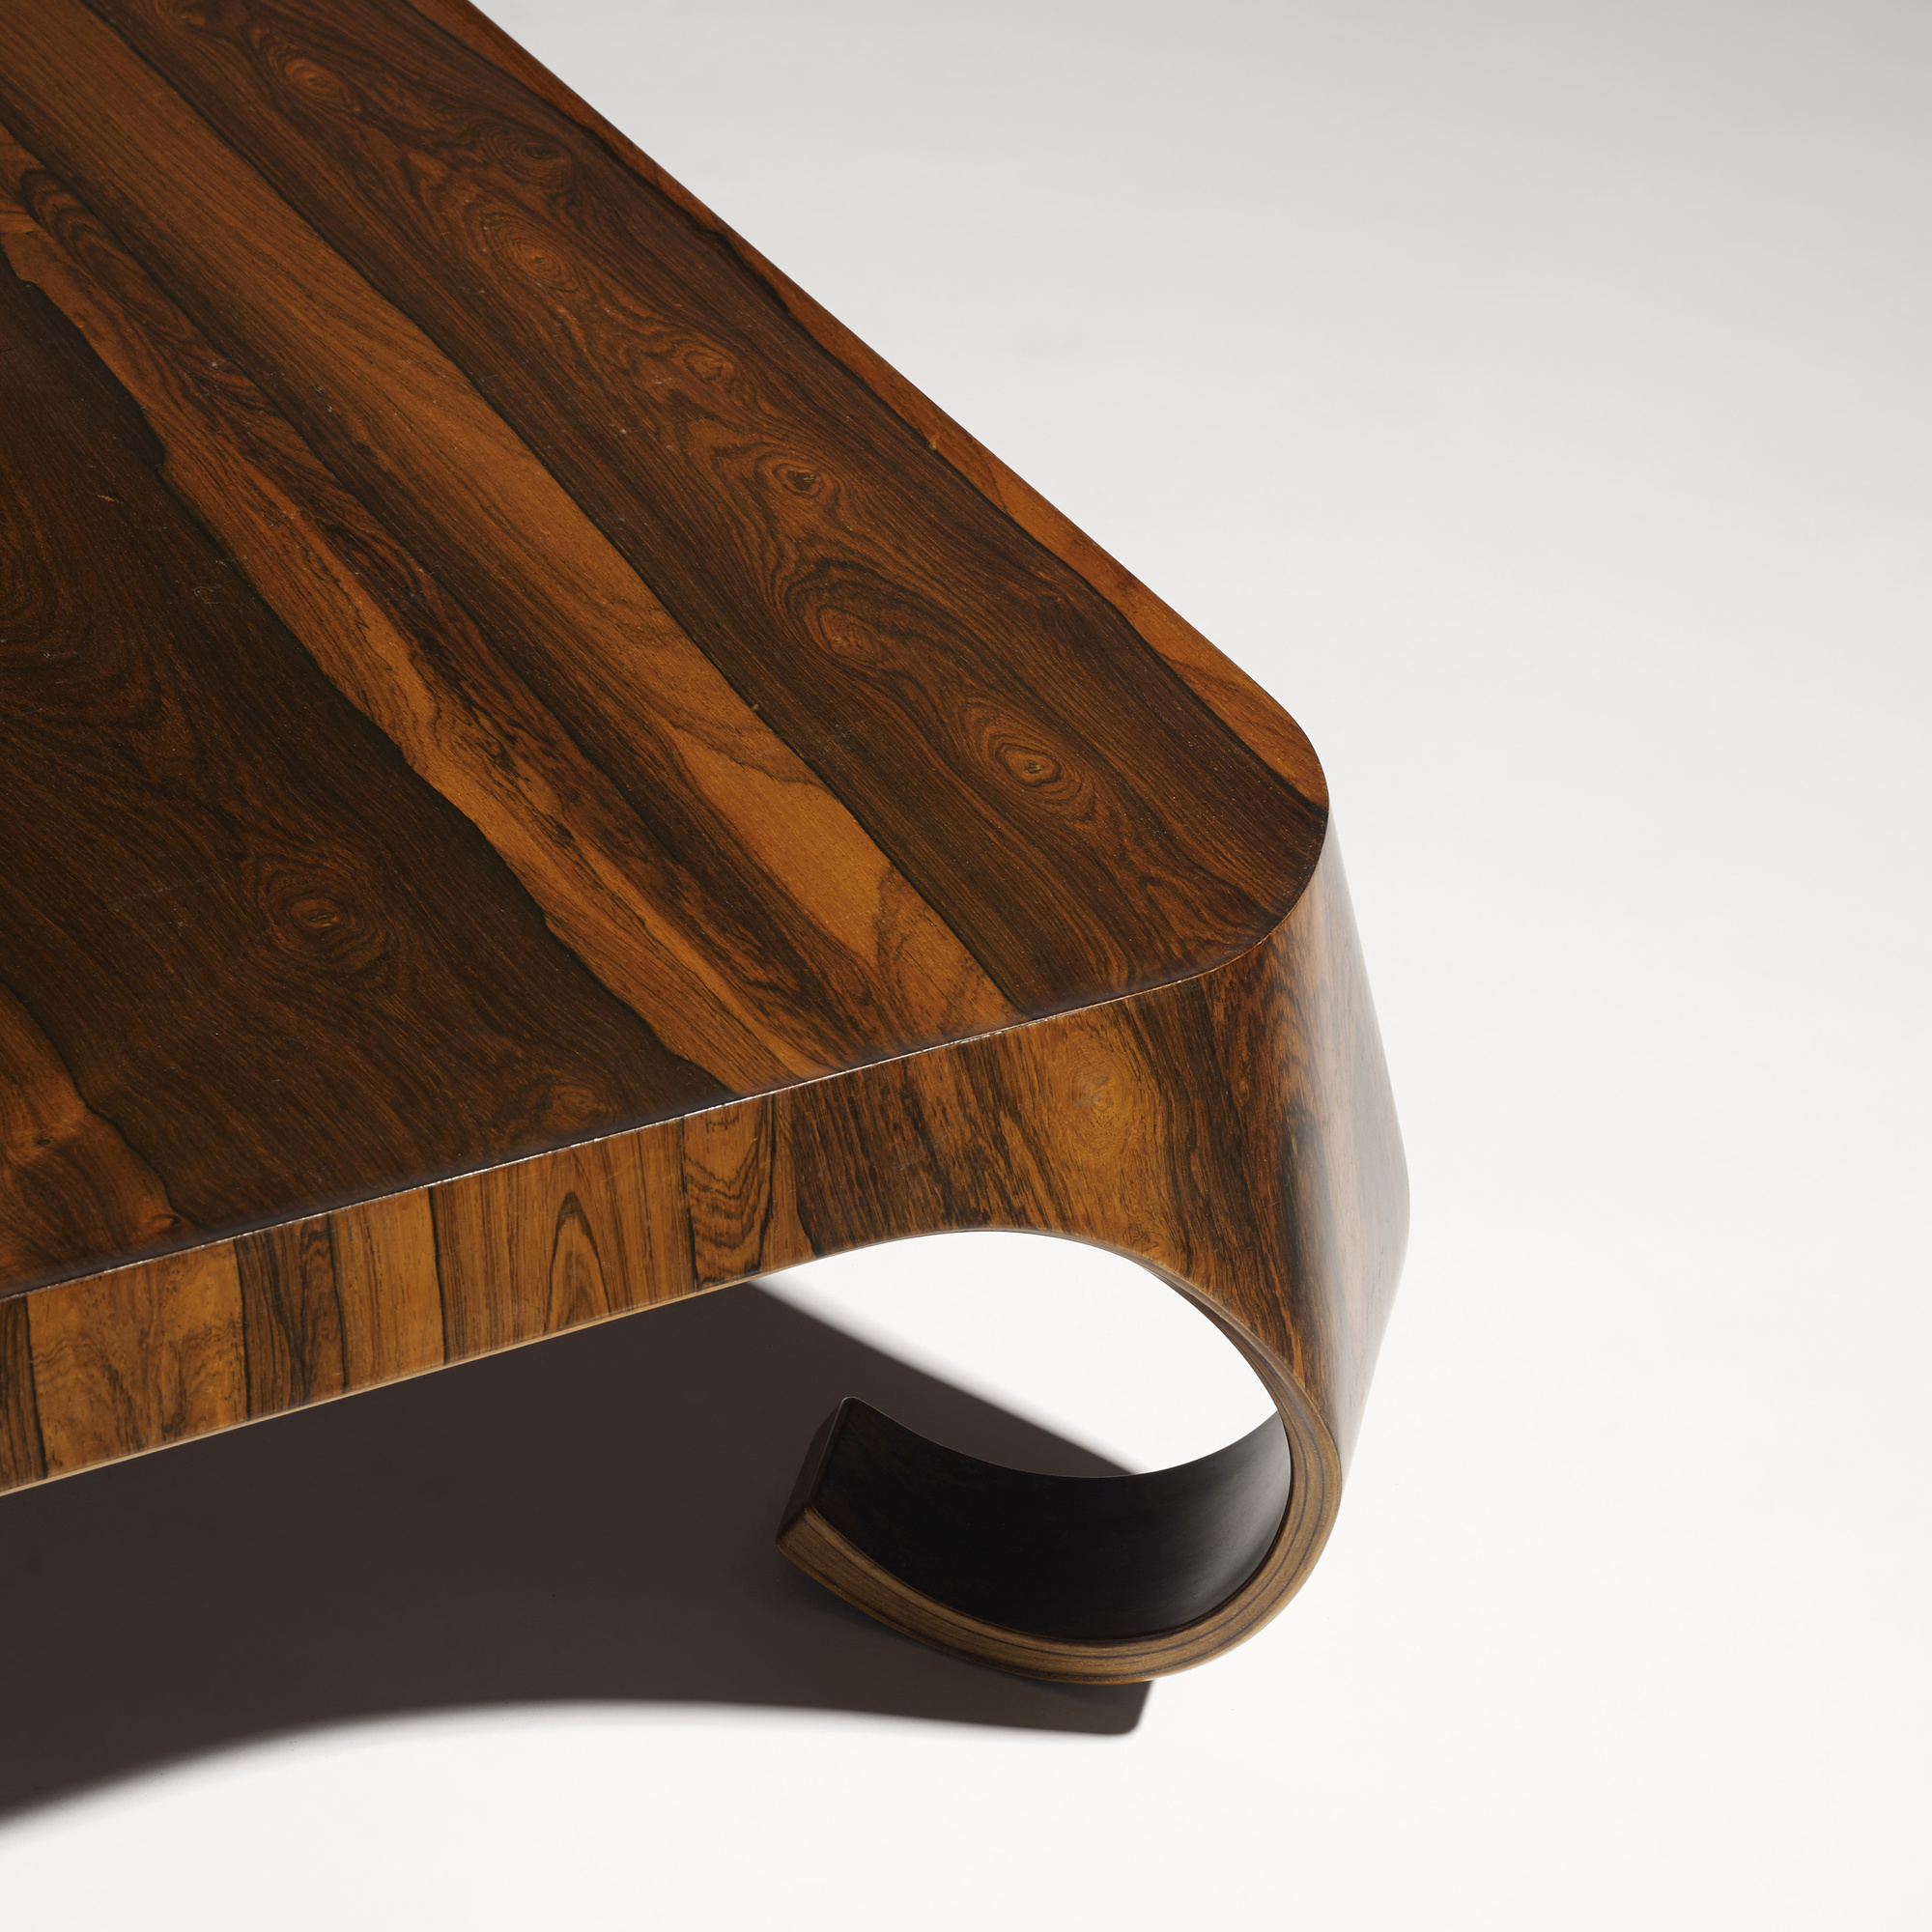 360: Isamu Kenmochi / custom coffee table (3 of 3)